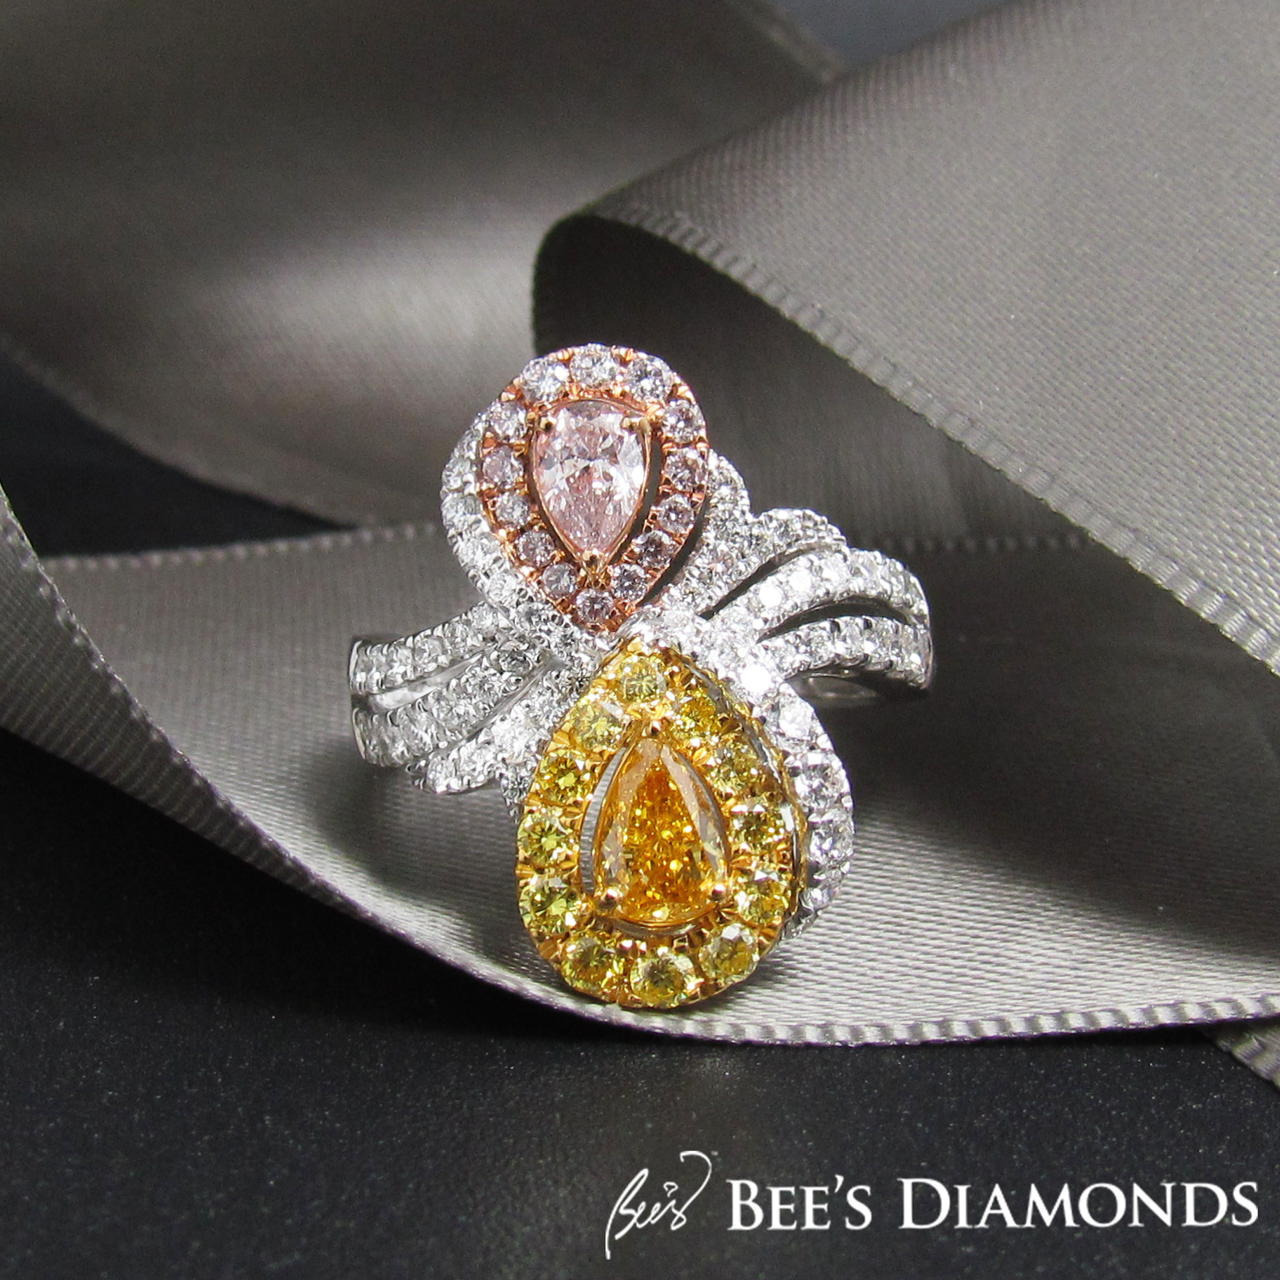 Pink and yellow pear shaped diamond rings | Bee's Diamonds